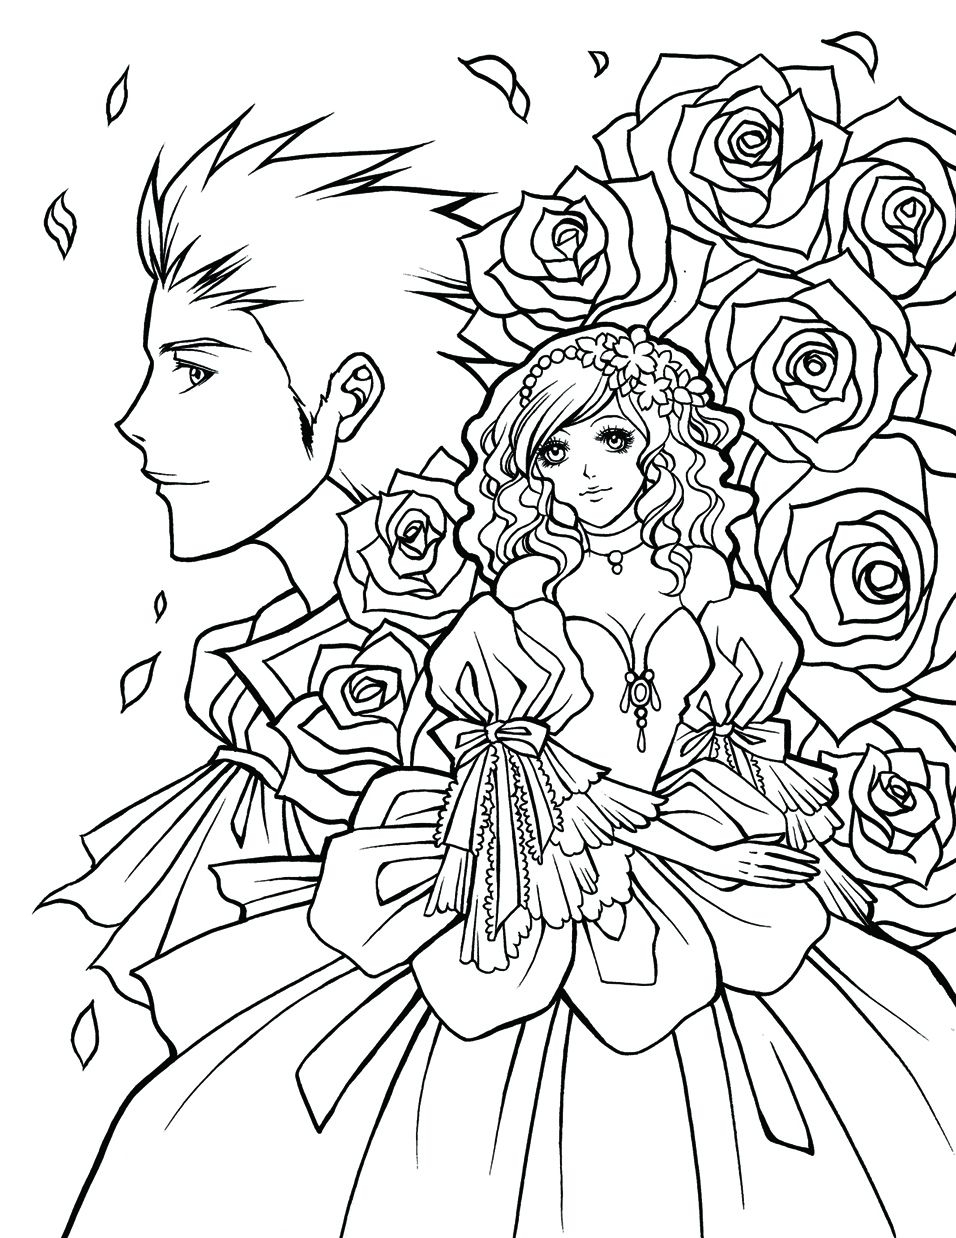 956x1238 Outstanding Cute Manga Coloring Pages Images